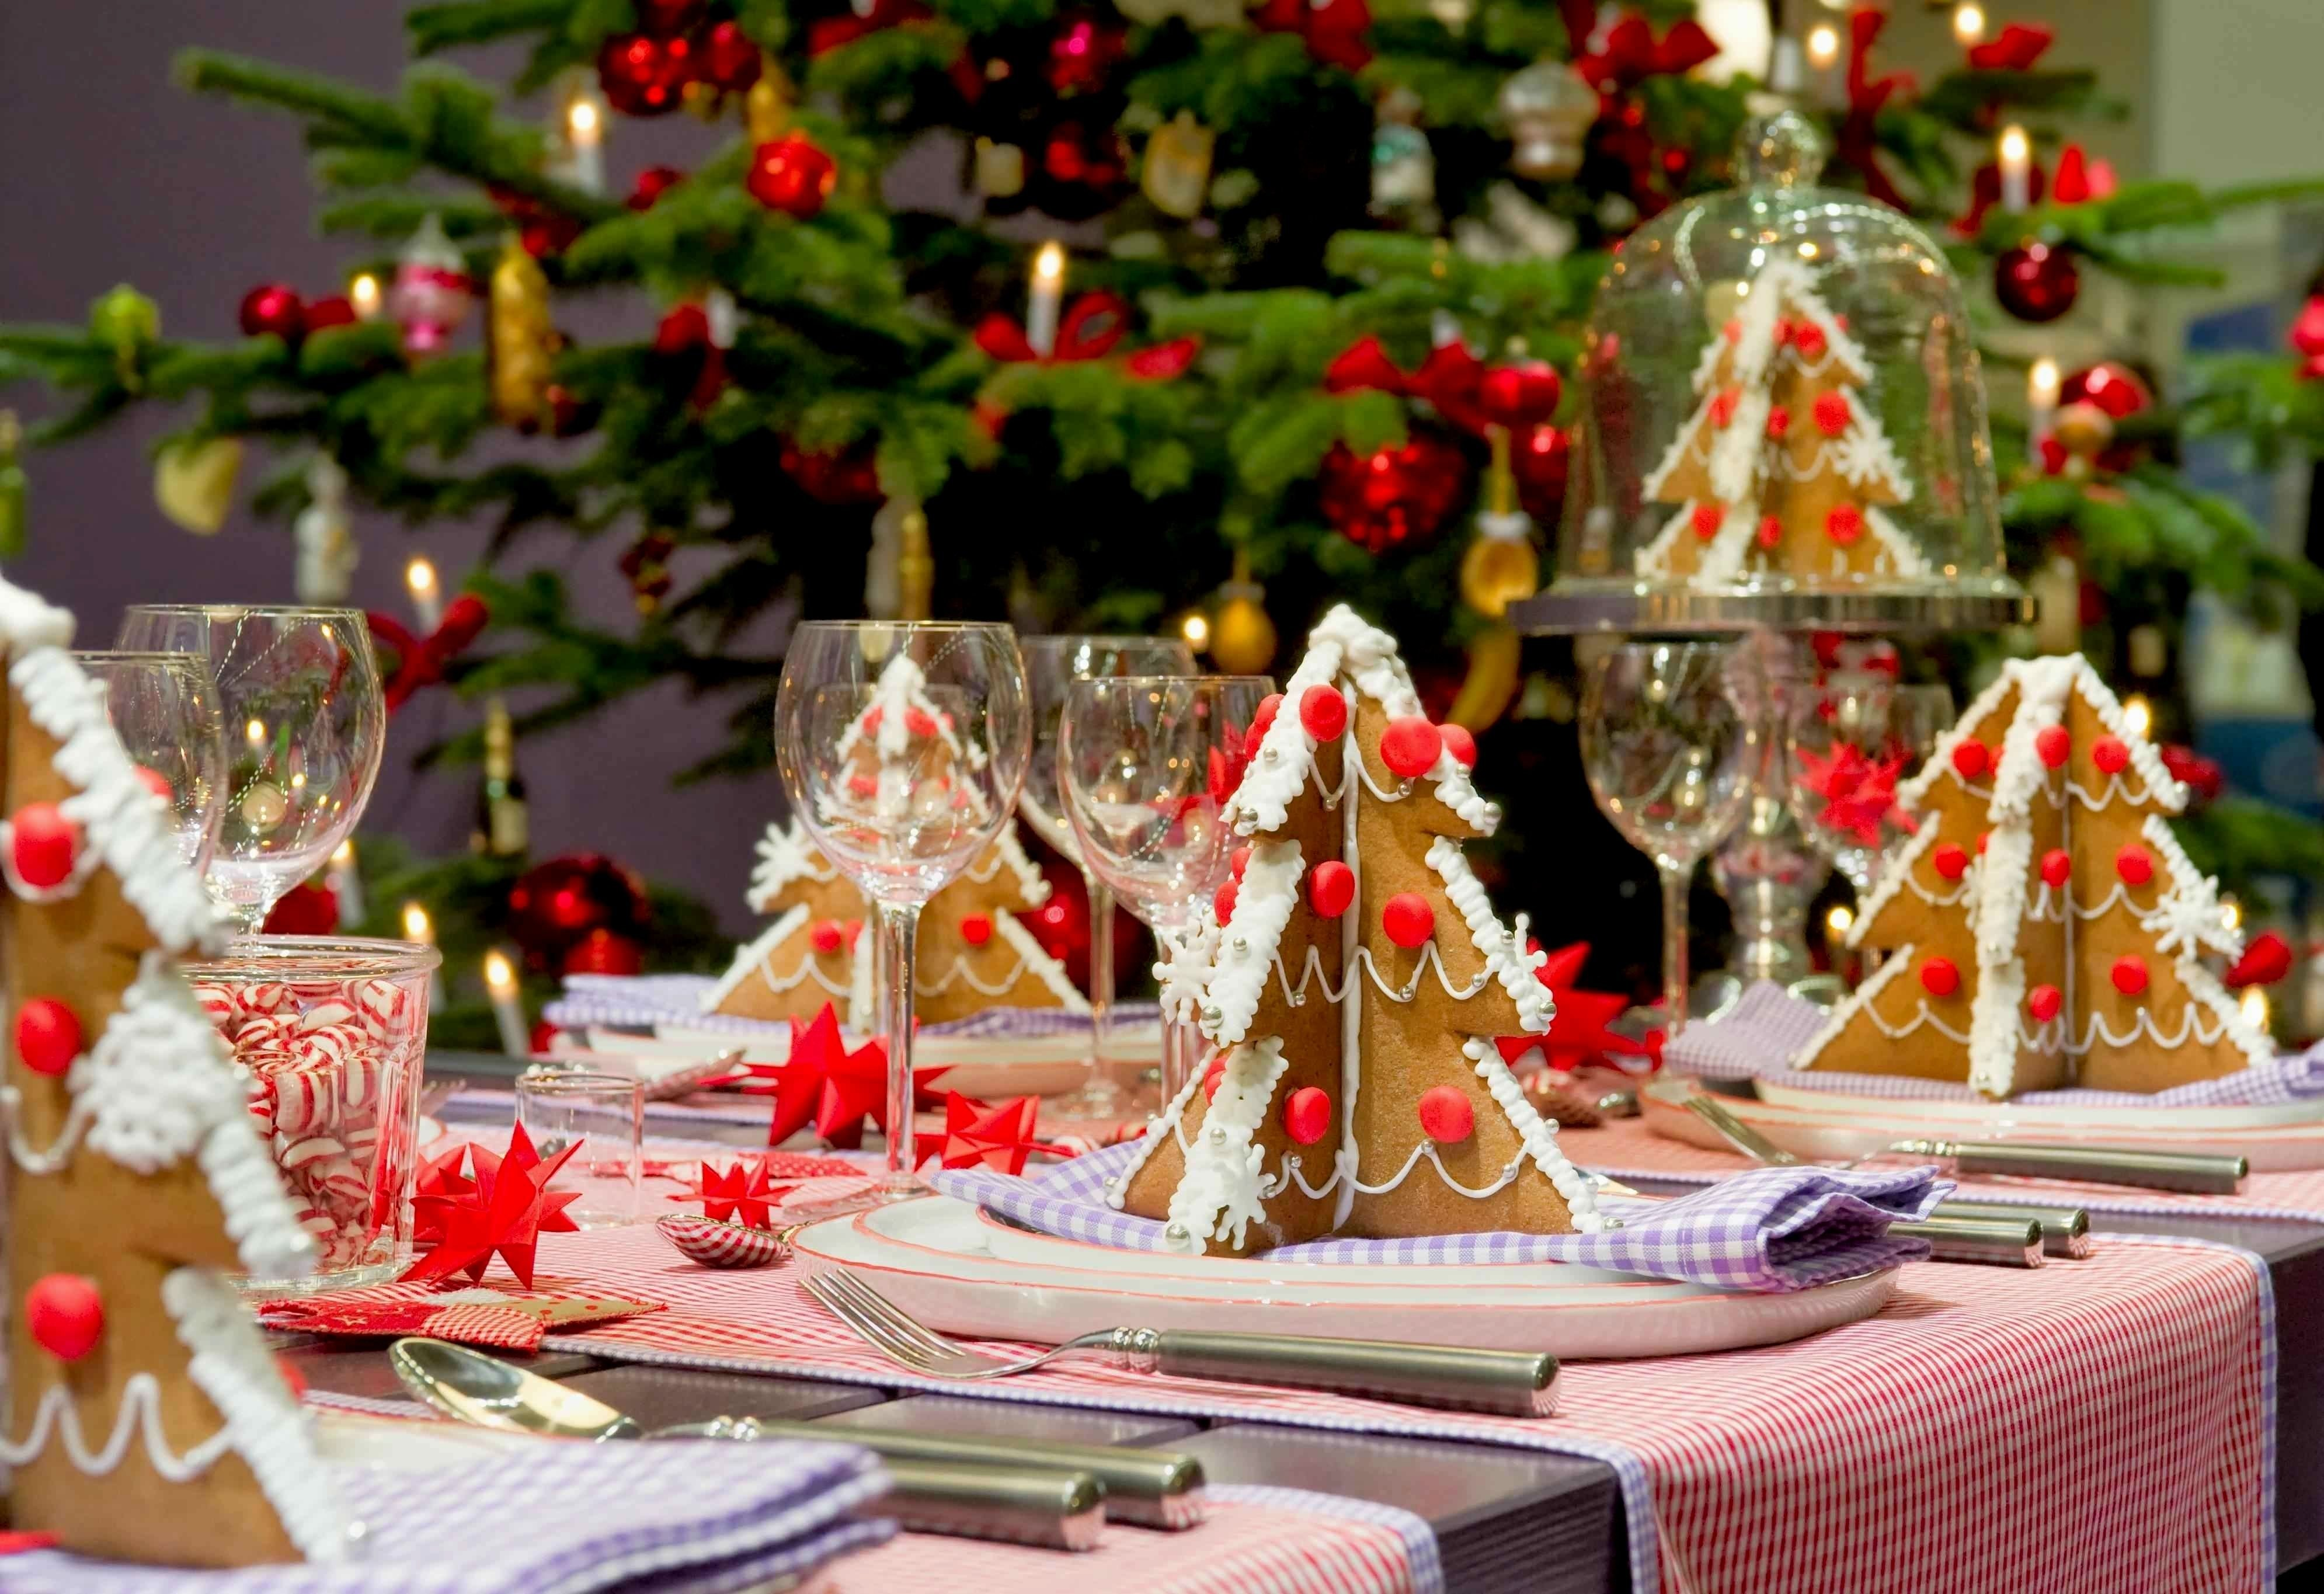 10 Best Christmas Party Ideas For Work christmas party theme ideas for work archives decorating of party